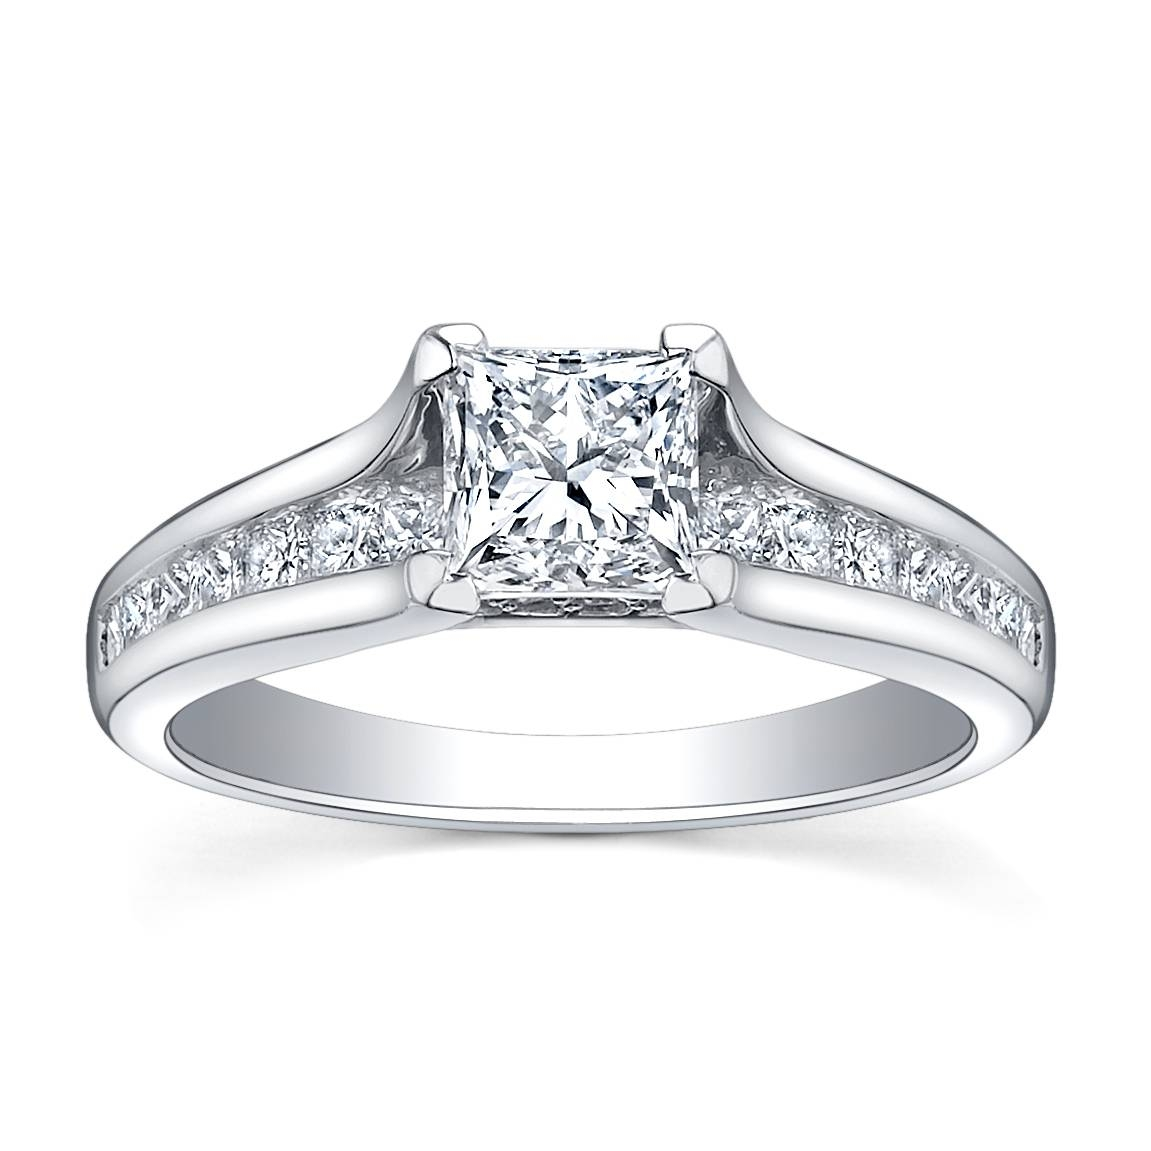 Fallers Wedding Jewellery 18K White Gold Diamond Engagement Ring Within White Gold Engagement Rings (View 6 of 15)